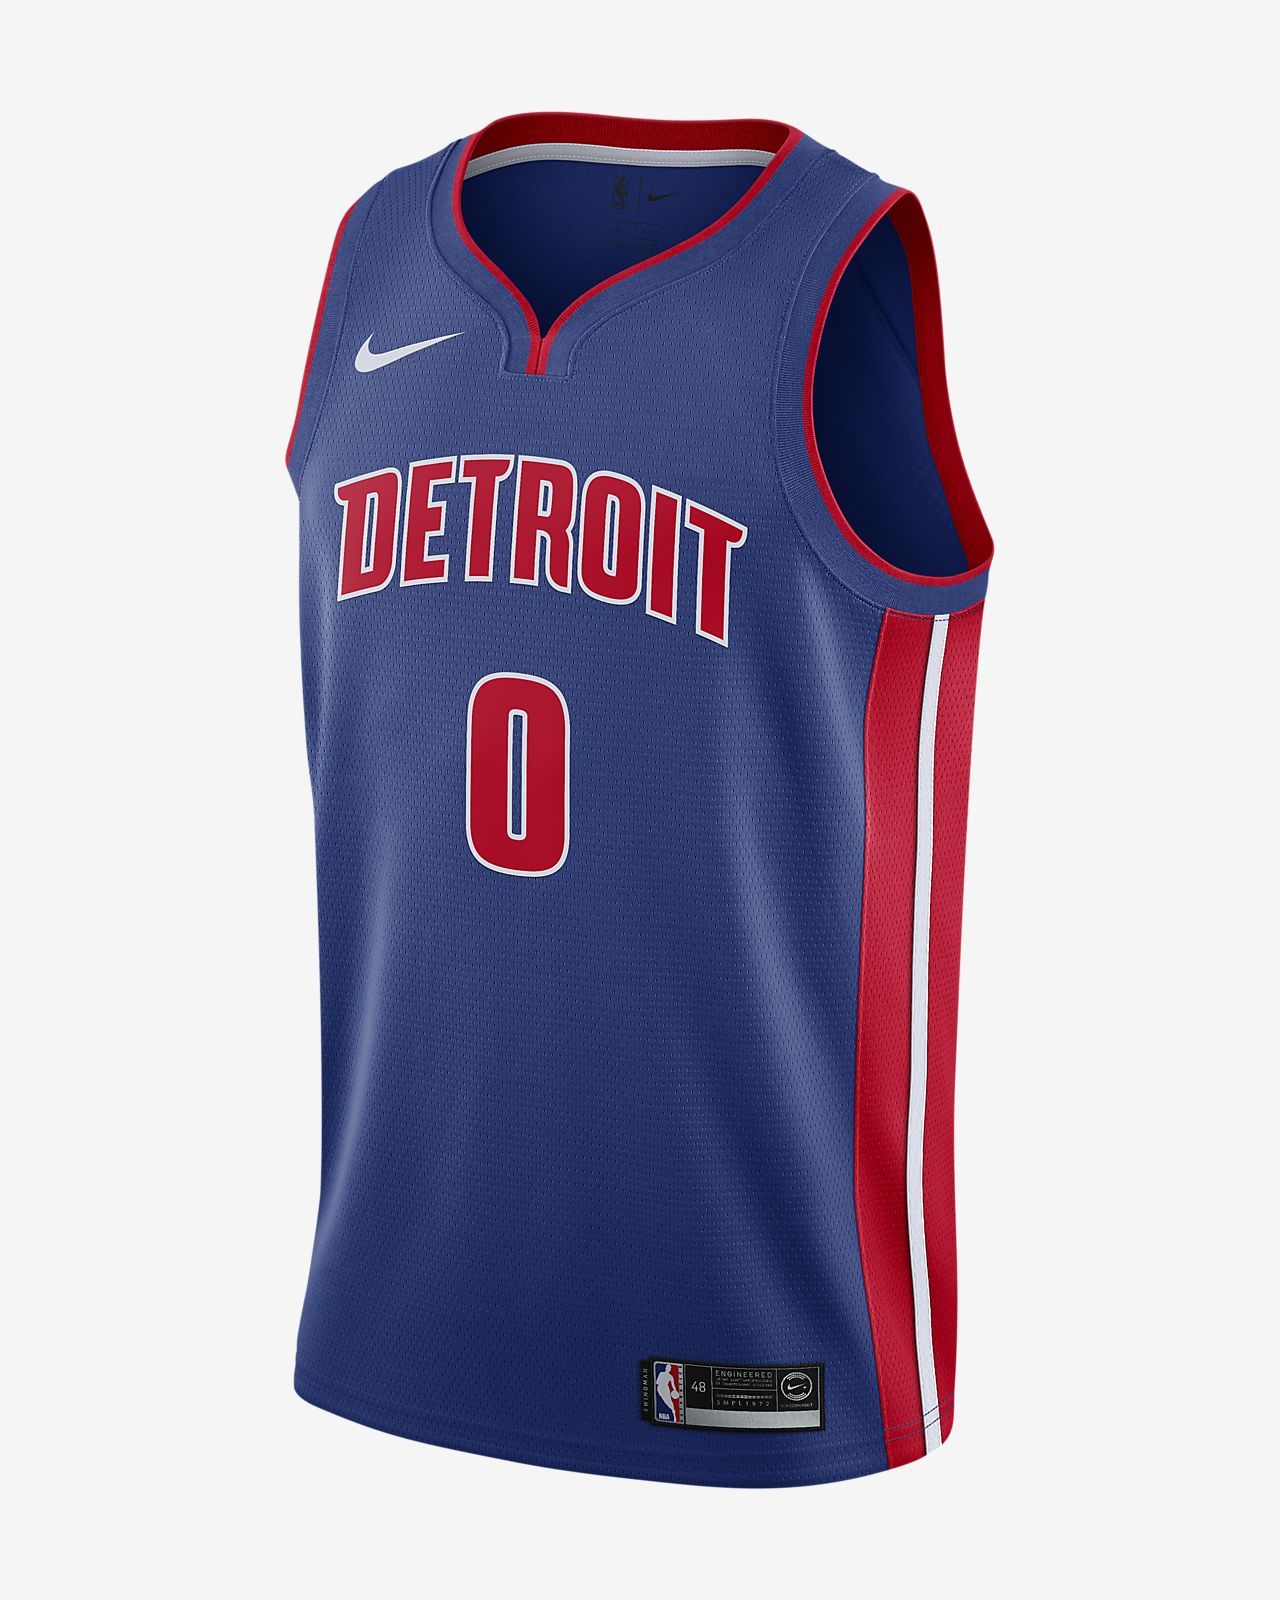 Maglia Nike NBA Connected Andre Drummond Icon Edition Swingman (Detroit Pistons) - Uomo